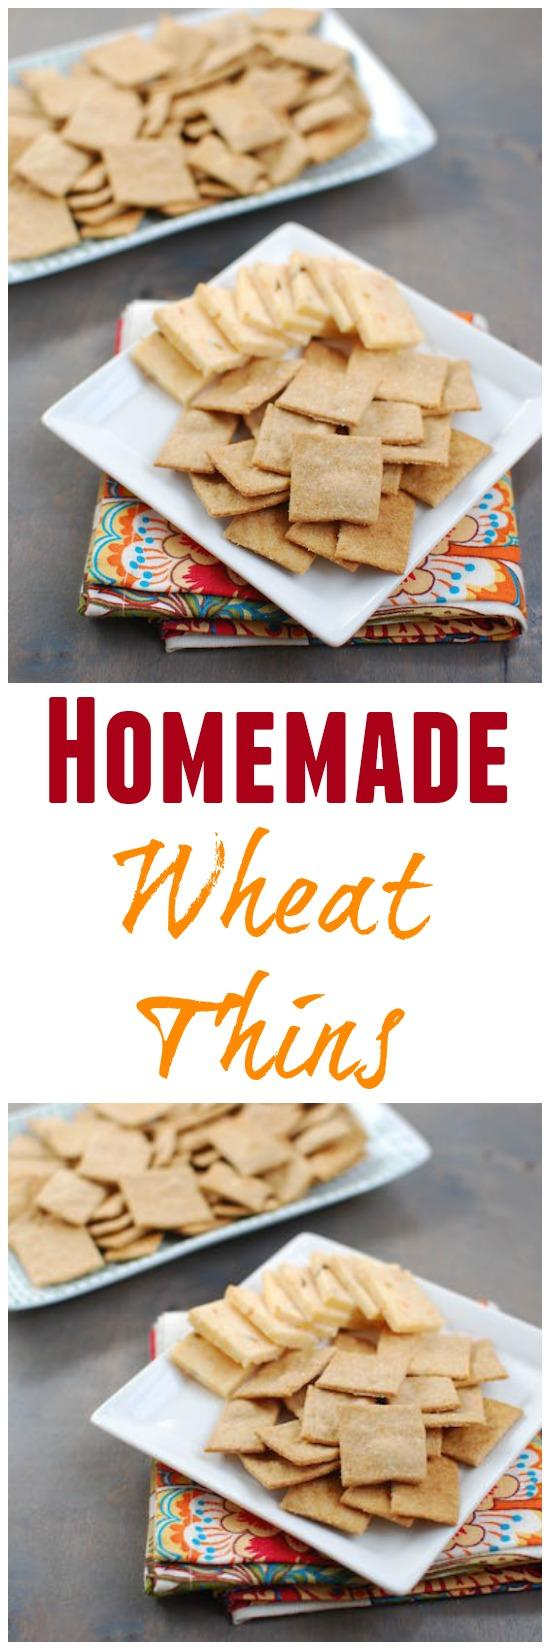 These easy, homemade Wheat Thins taste even better than store bought!